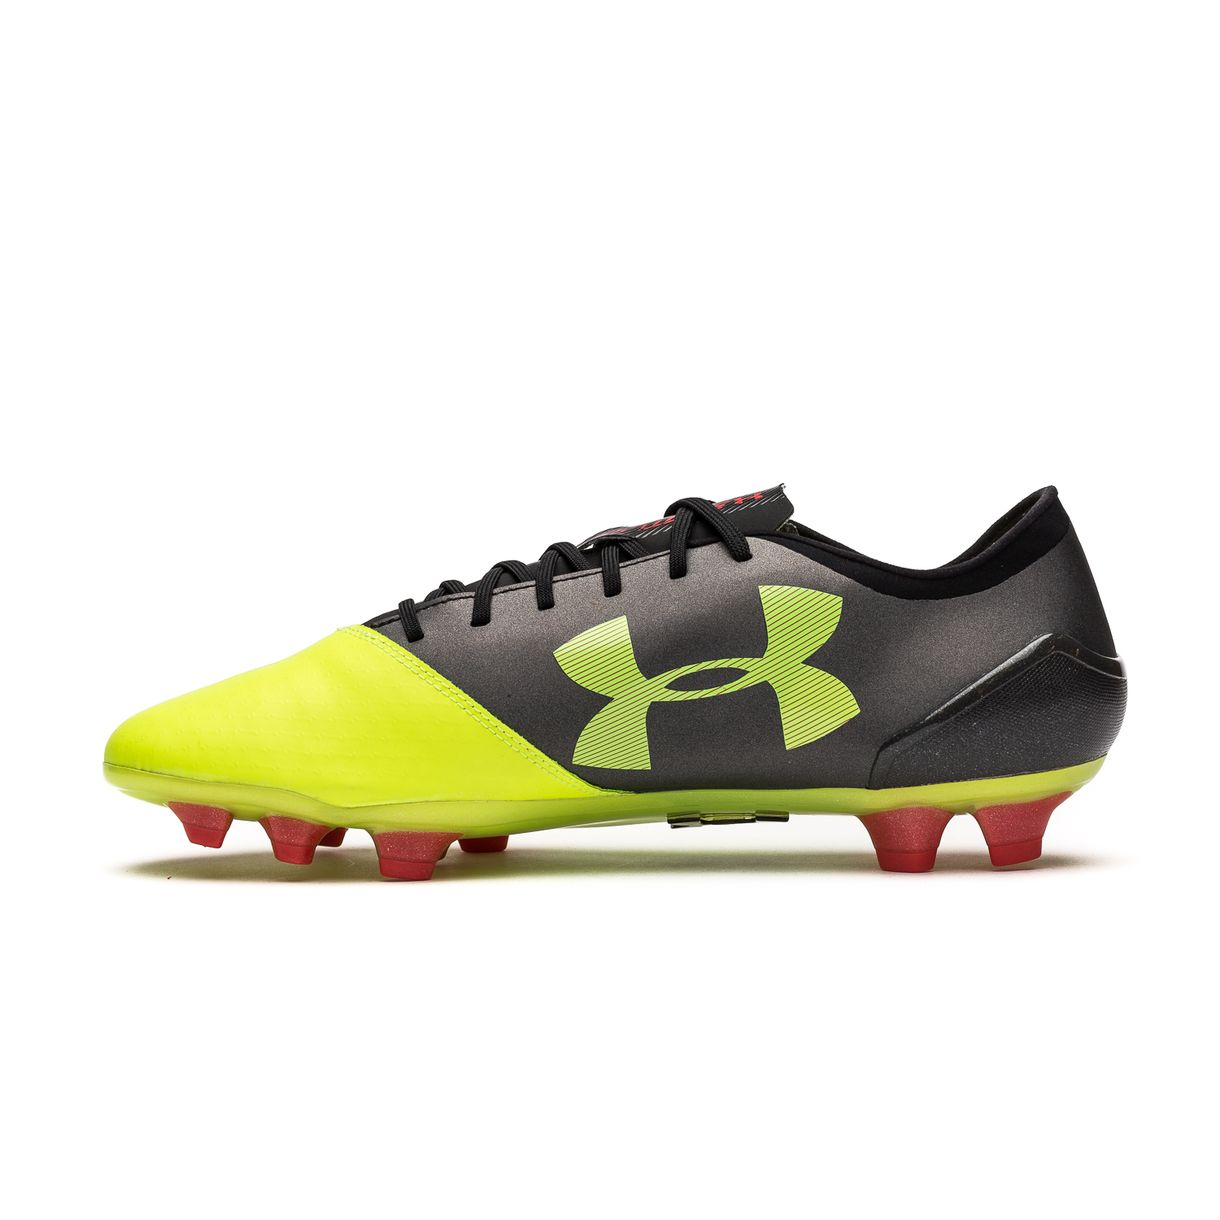 Click to enlarge image under armour spotlight fg hi vis yellow a.jpg  Click  to enlarge image under armour spotlight fg hi vis yellow b.jpg ... 5dc6b73d2714